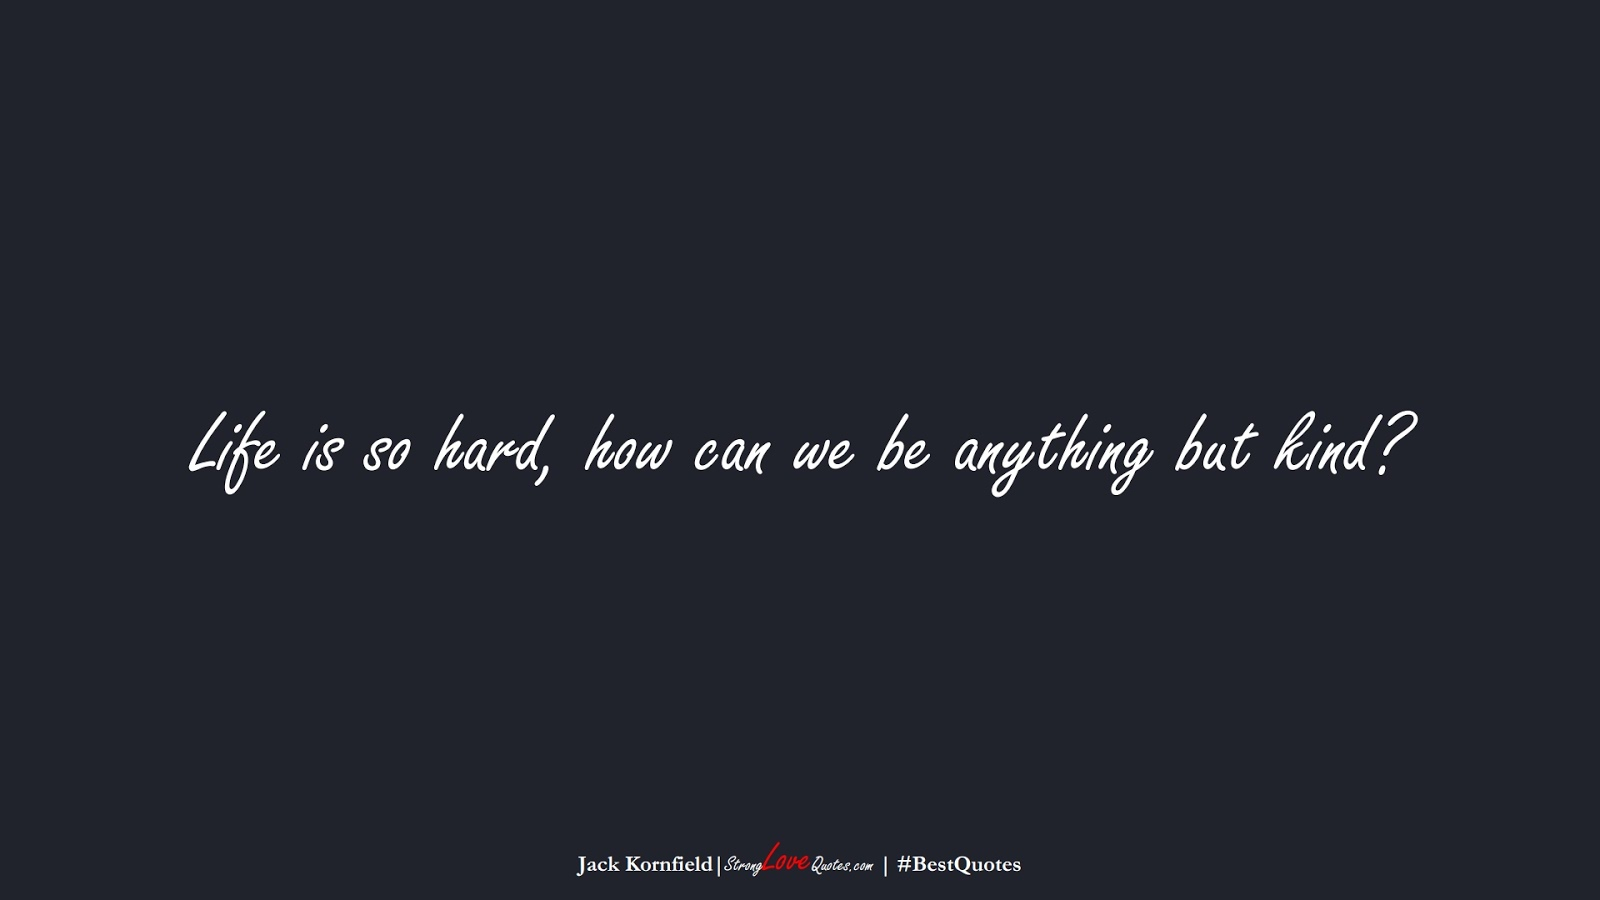 Life is so hard, how can we be anything but kind? (Jack Kornfield);  #BestQuotes